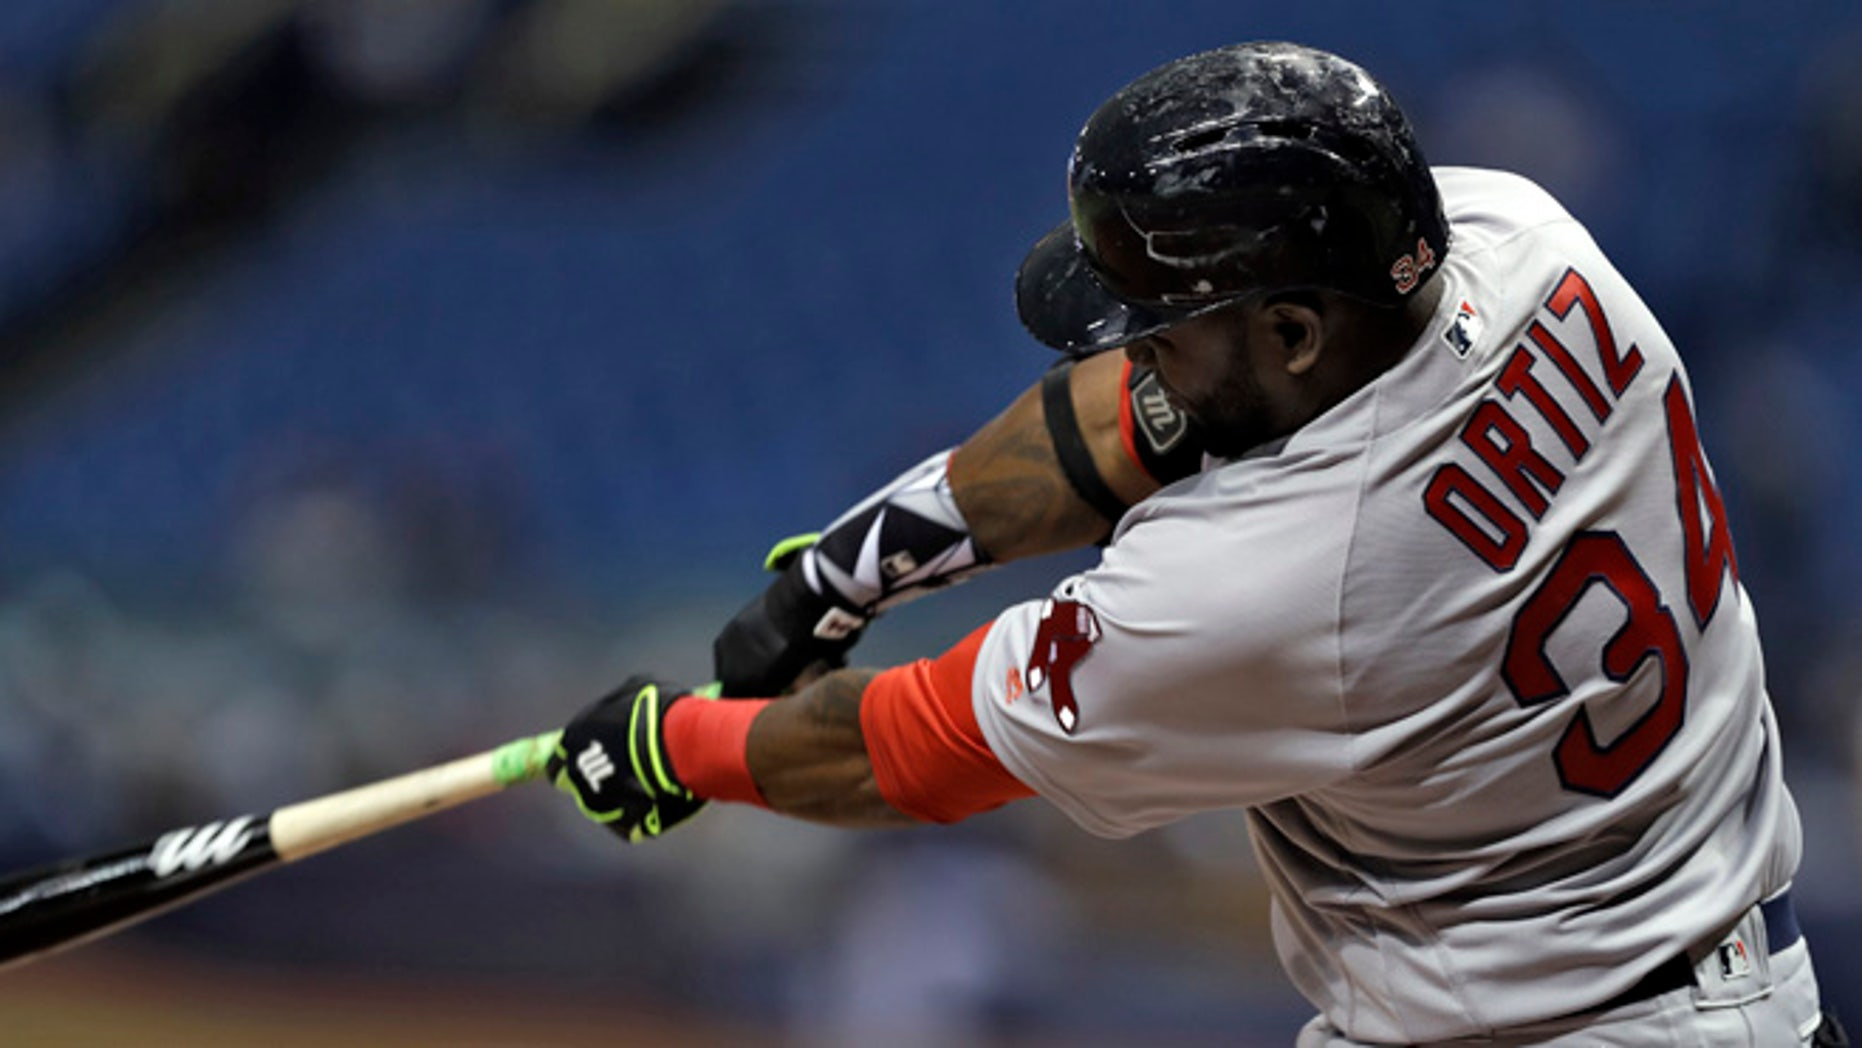 Boston Red Sox's David Ortiz during the first inning of a baseball game Wednesday, Aug. 24, 2016, in St. Petersburg, Fla.